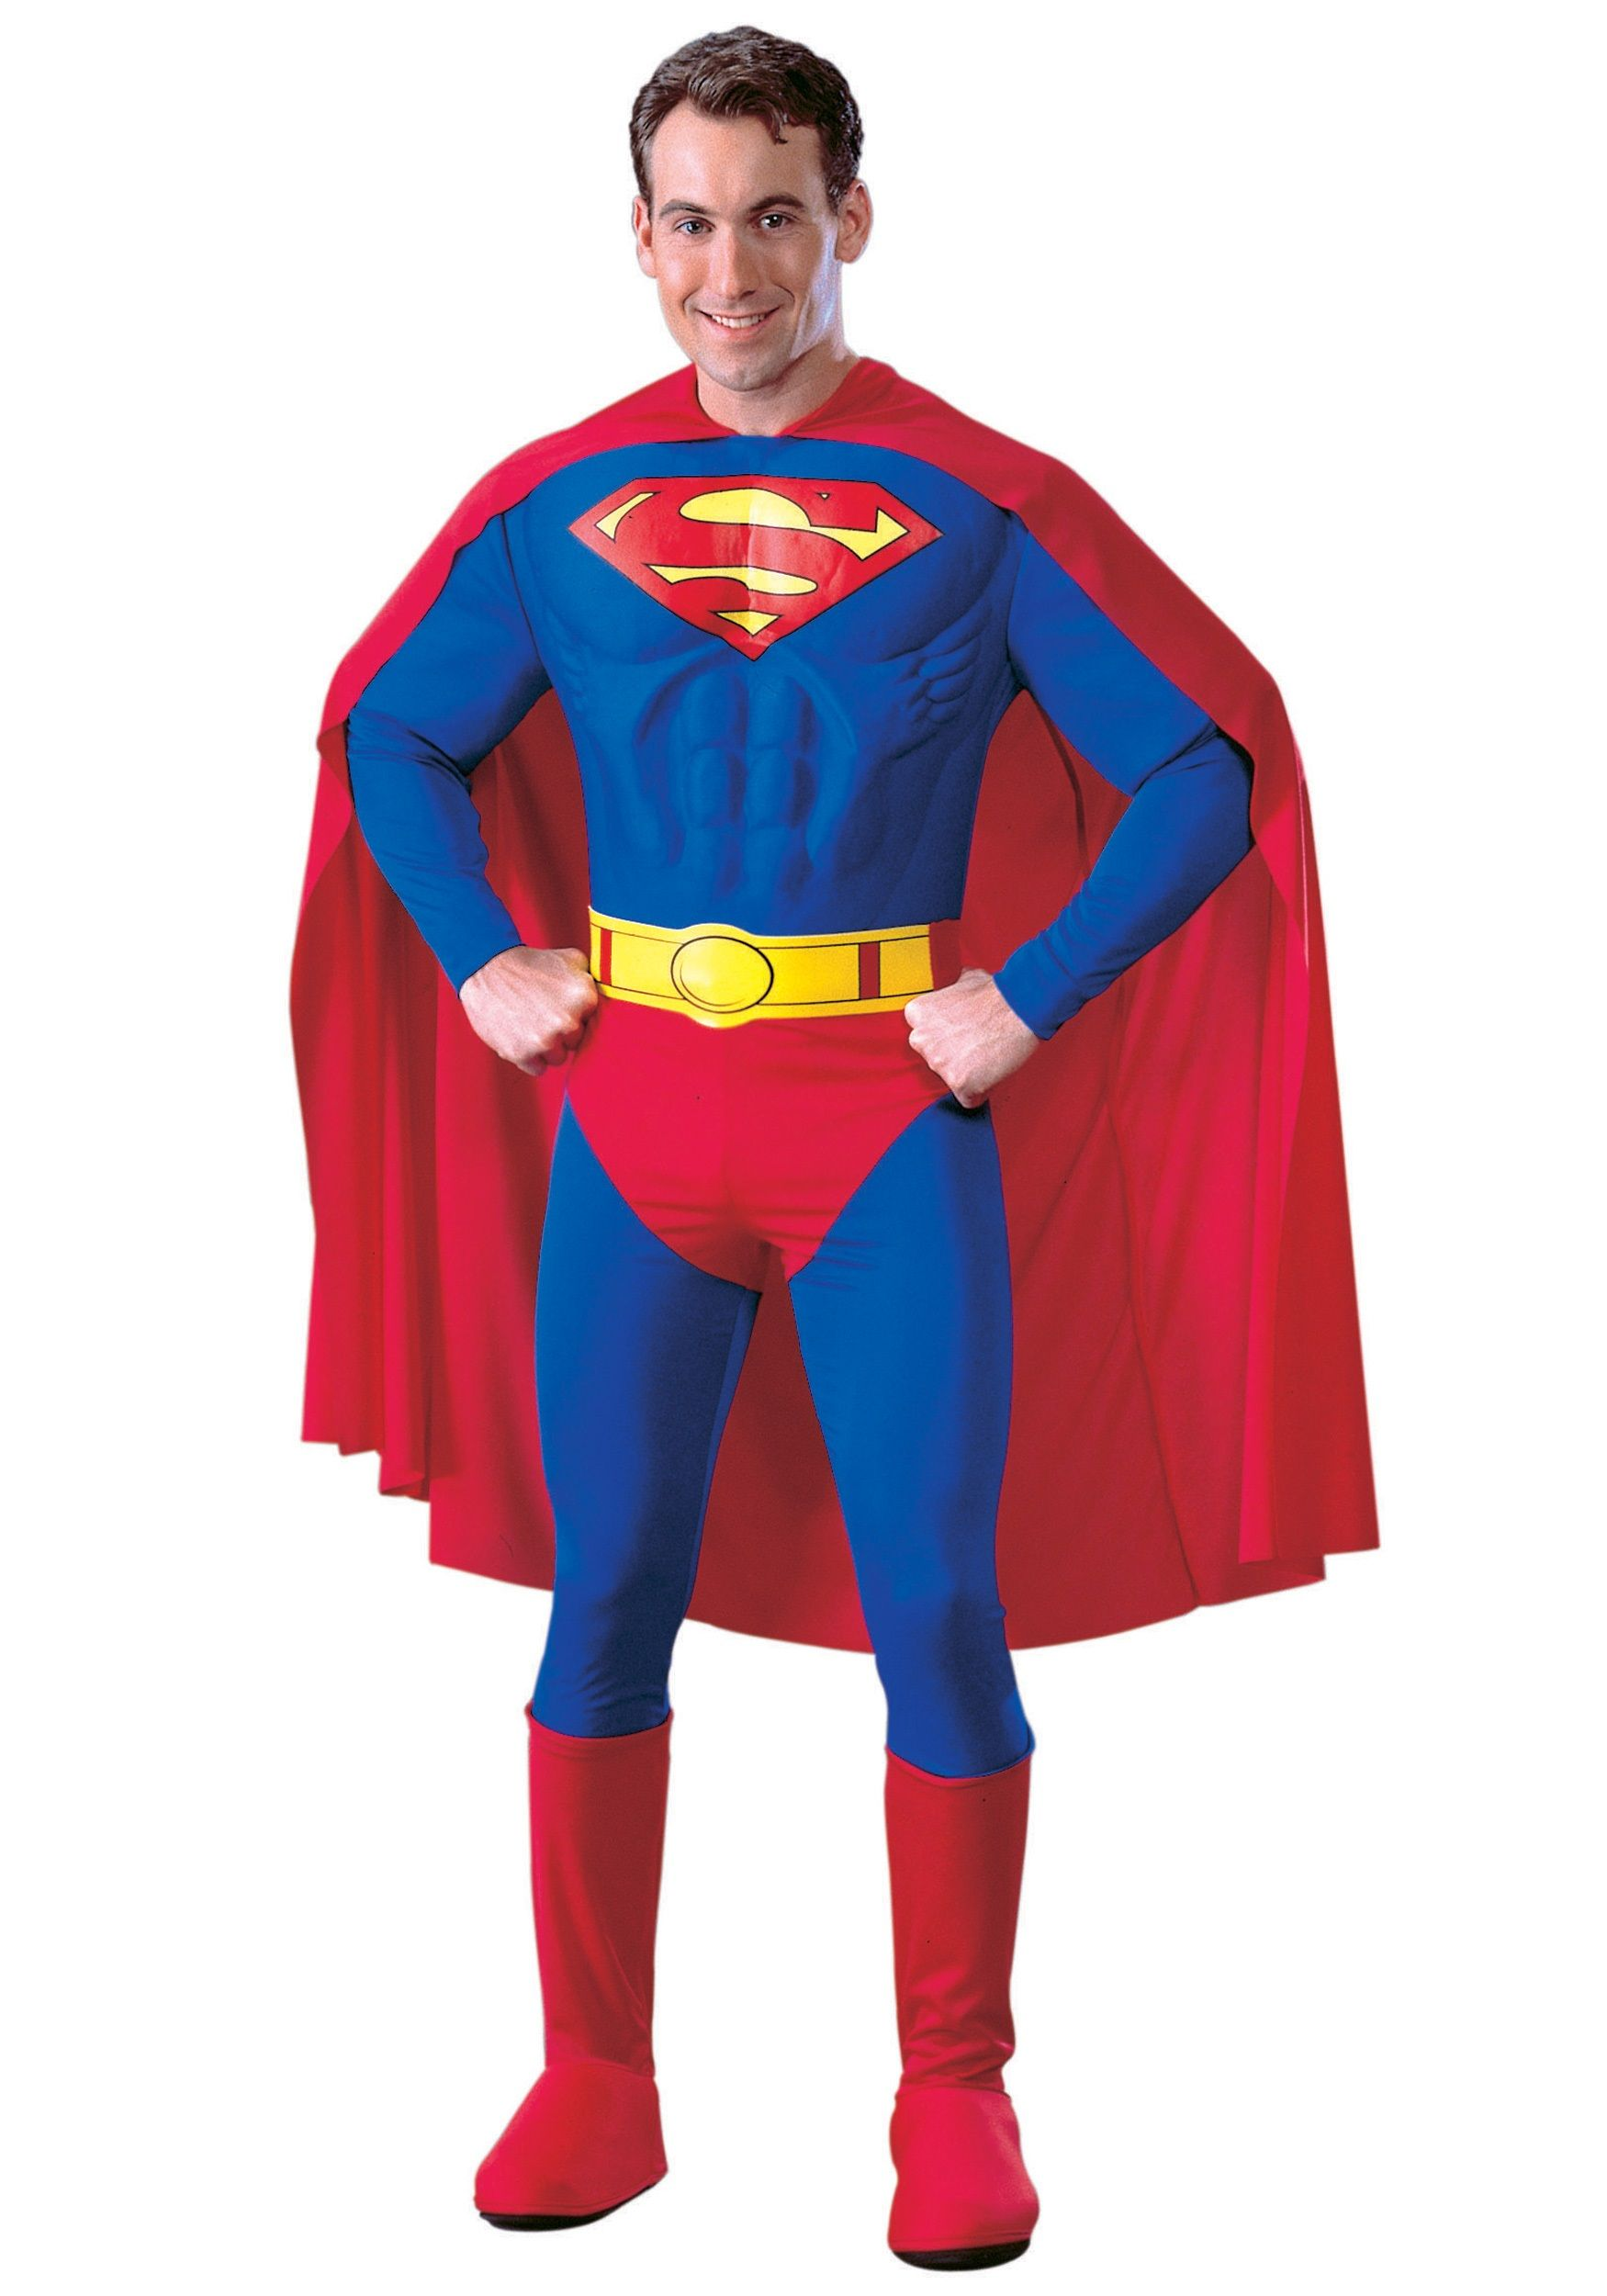 halloween costume ideas from movies on Home Halloween Costume Ideas ... Superman CostumesMenu0027s ...  sc 1 st  Pinterest & halloween costume ideas from movies on Home Halloween Costume Ideas ...